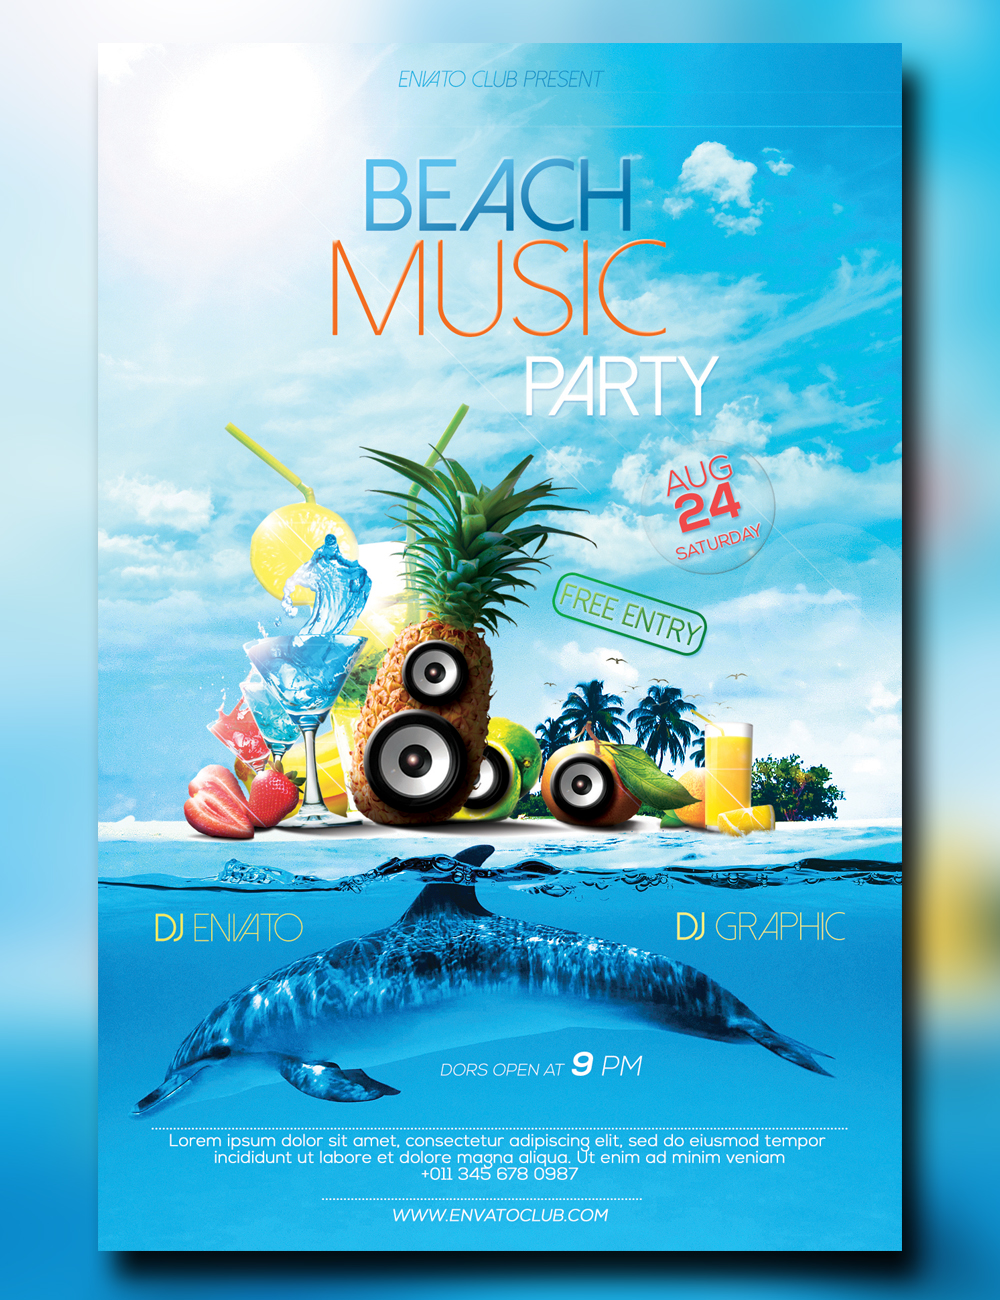 Beach Music Party Flyer by Romich-Studio on DeviantArt